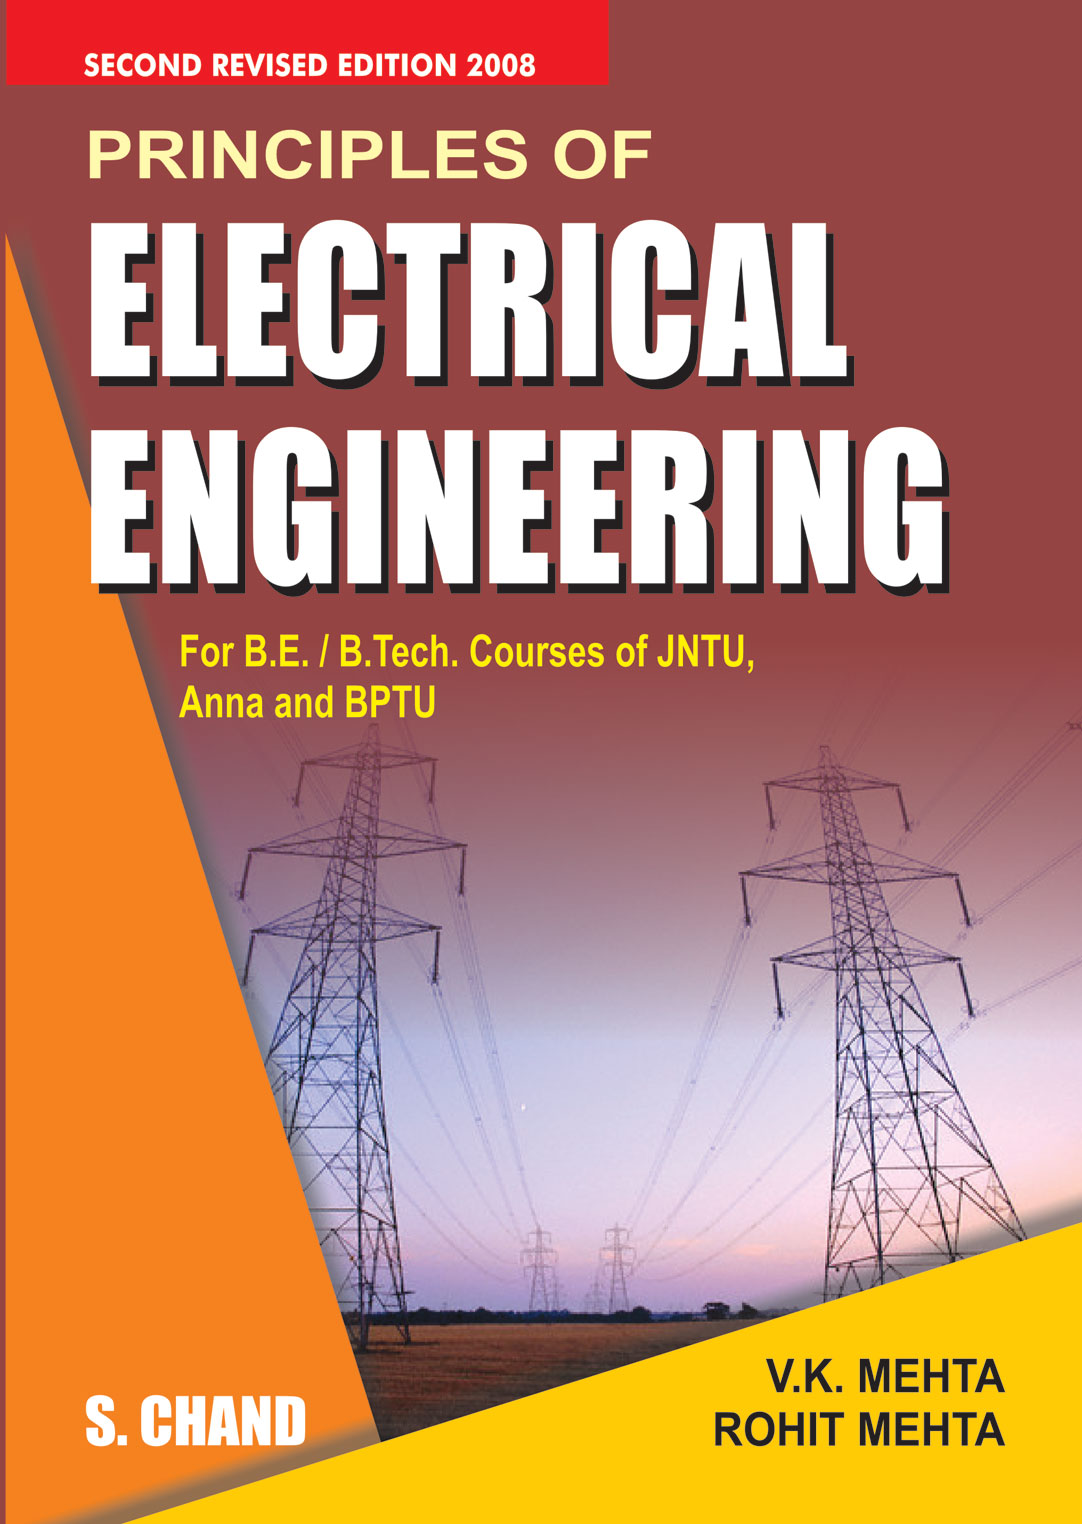 Auto Electrical Books Pdf